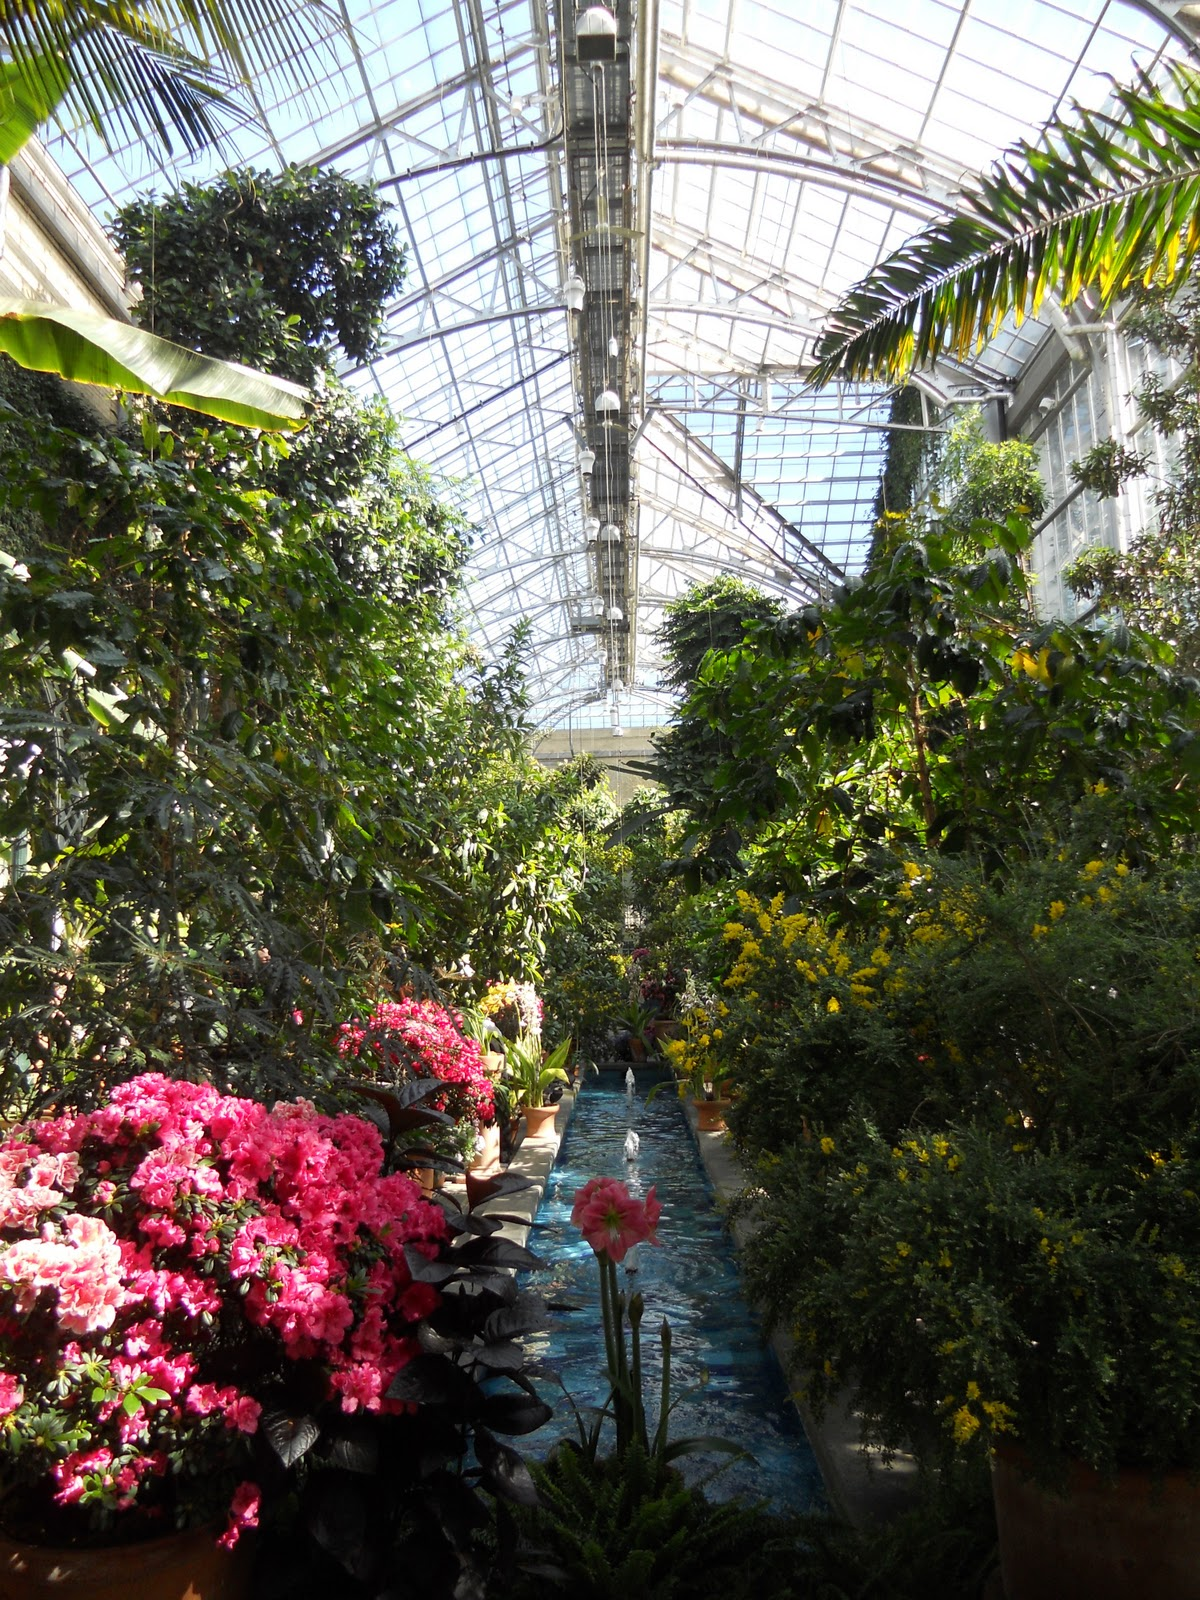 Here Is My Visit To The United States Botanic Garden (USBG) Located Along  The National Mall Near The Capitol Building. What Came Across My Mind When  I ...